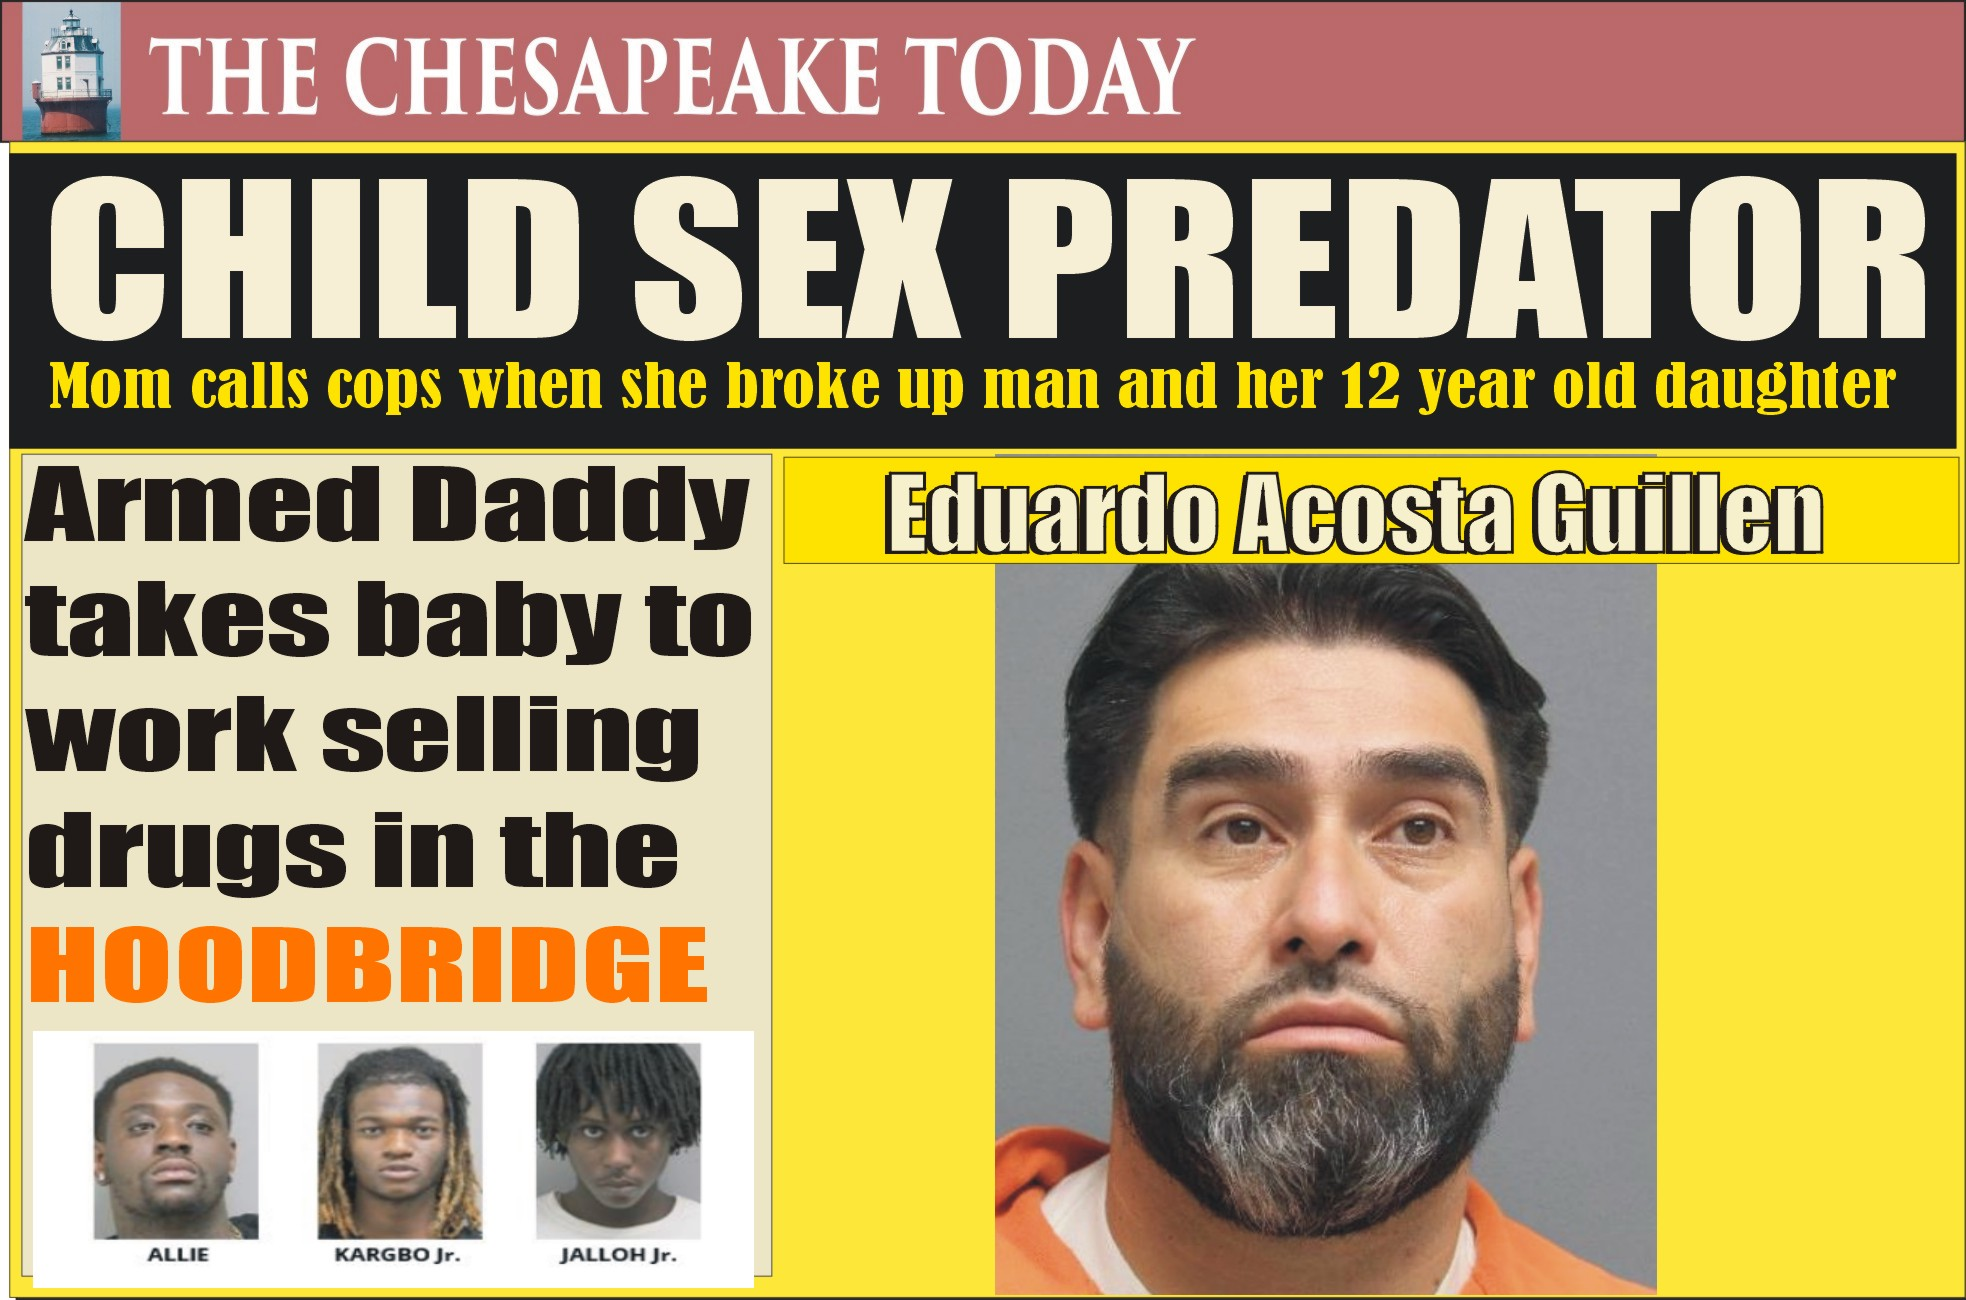 PRINCE WILLIAM POLICE NEWS BEAT: Eduardo Acosta Guillen charged with child sex assault and sodomy